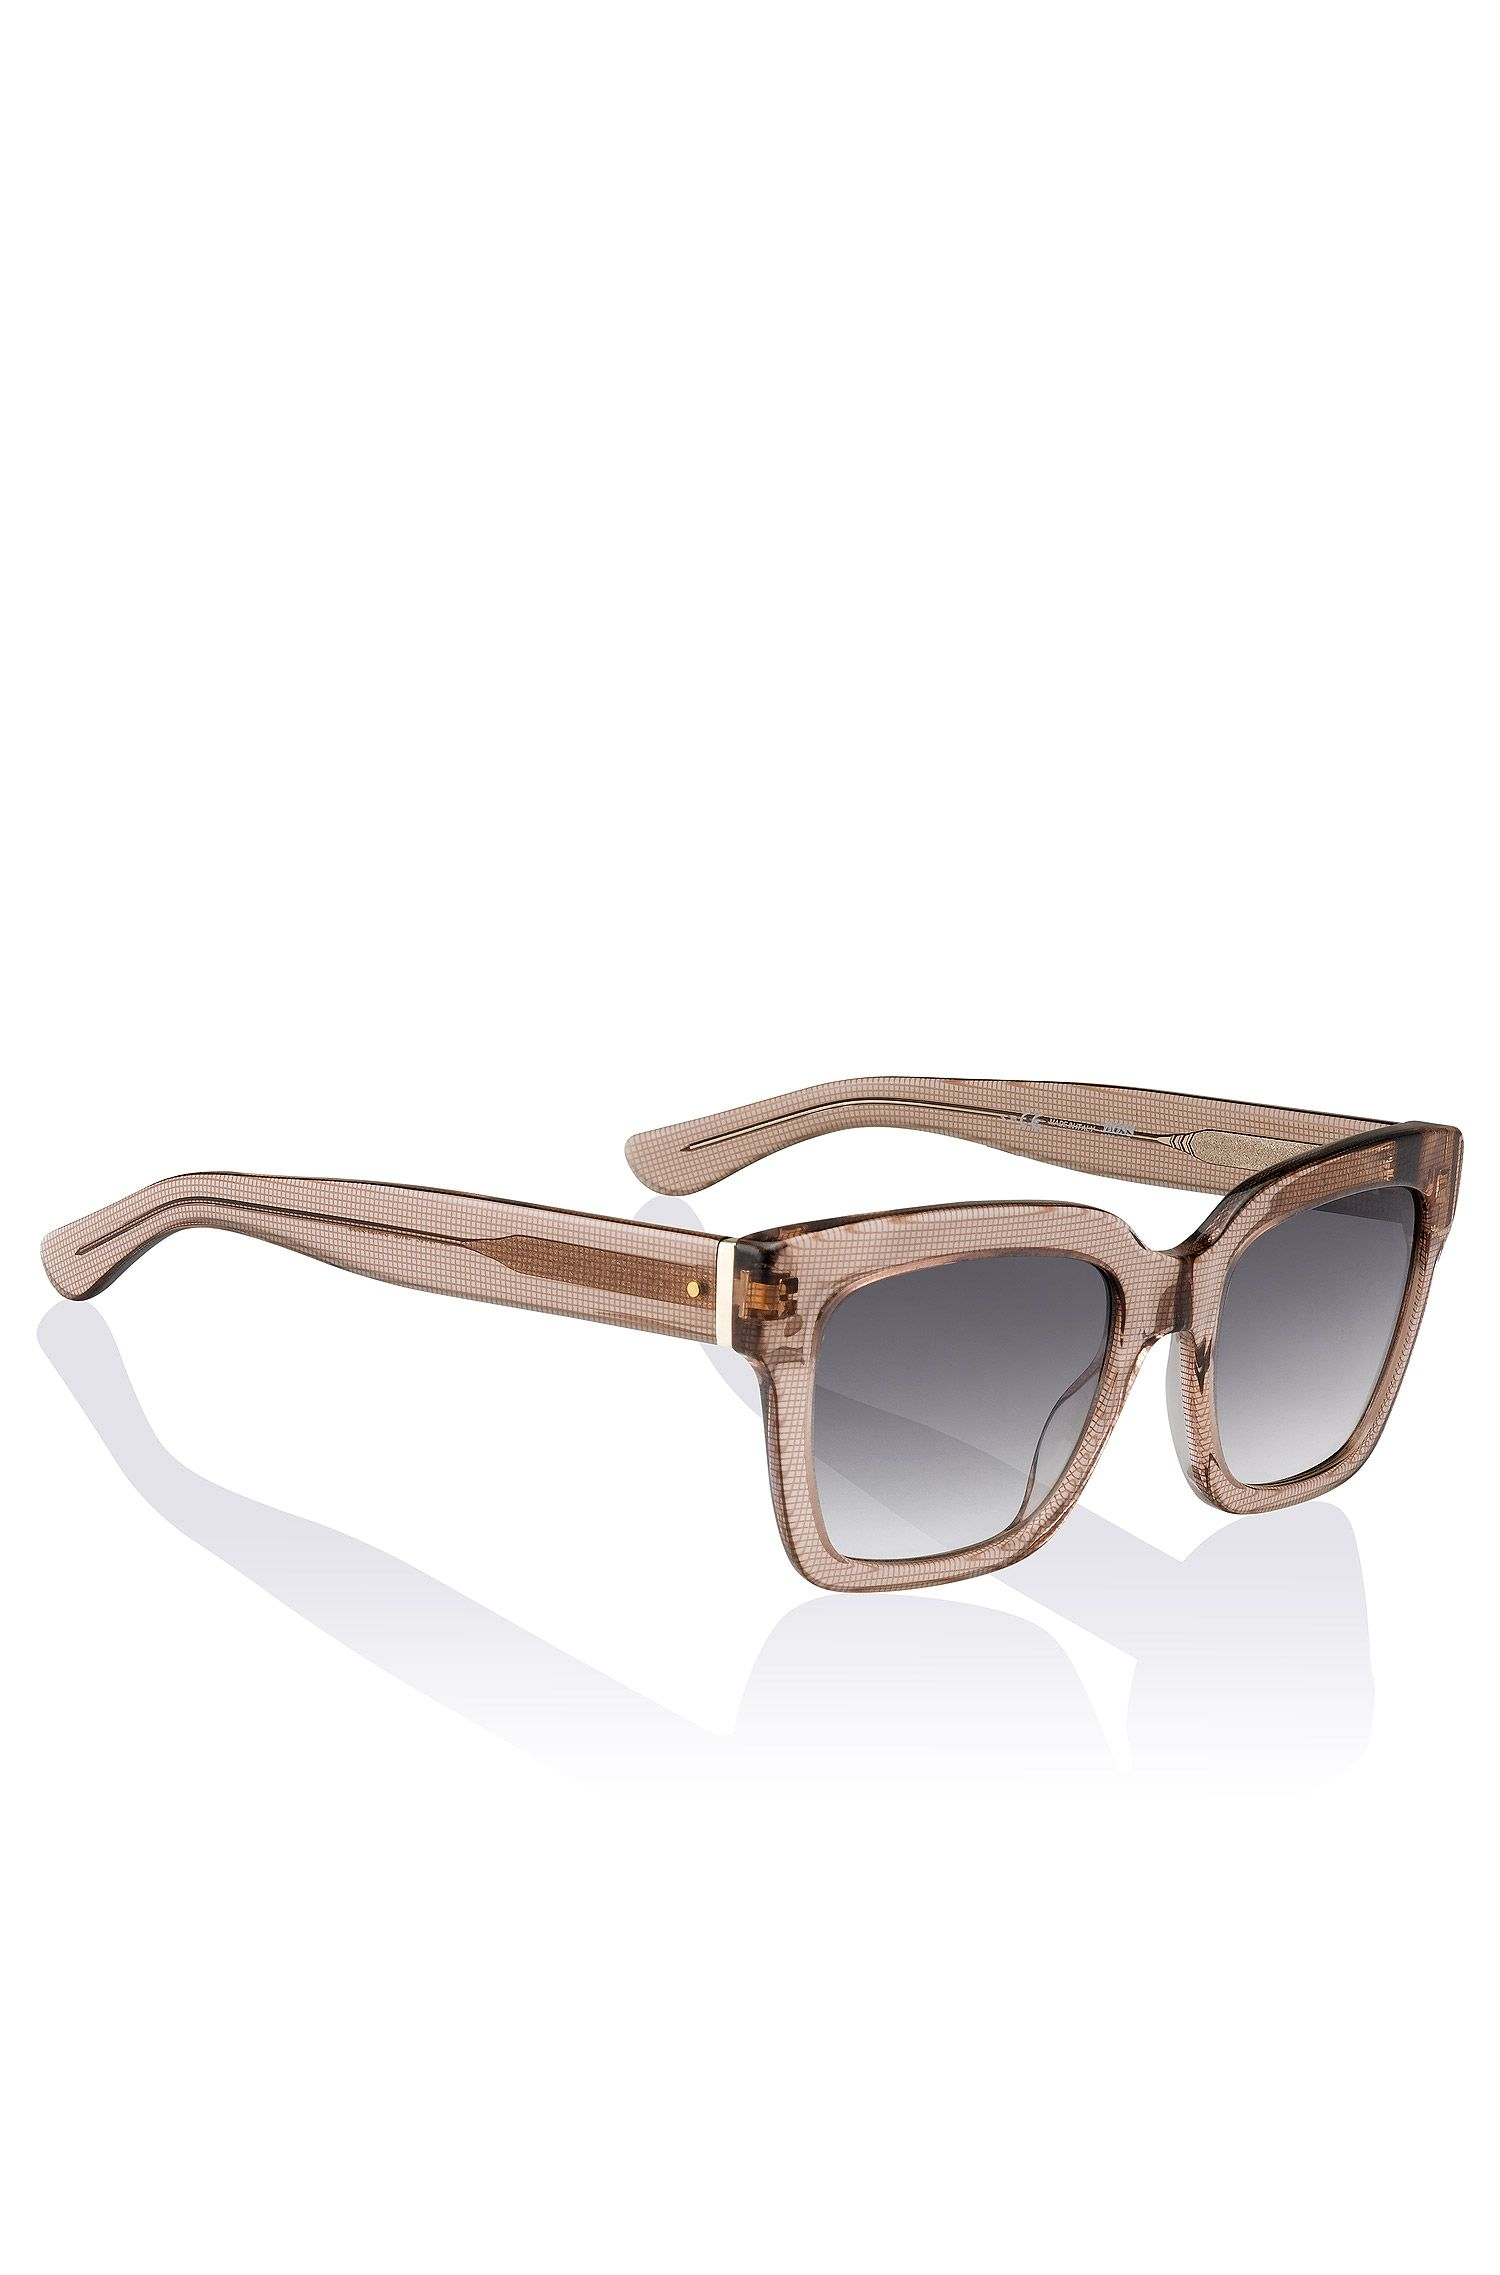 Wayfarer sunglasses 'BOSS 0674' in acetate and metal